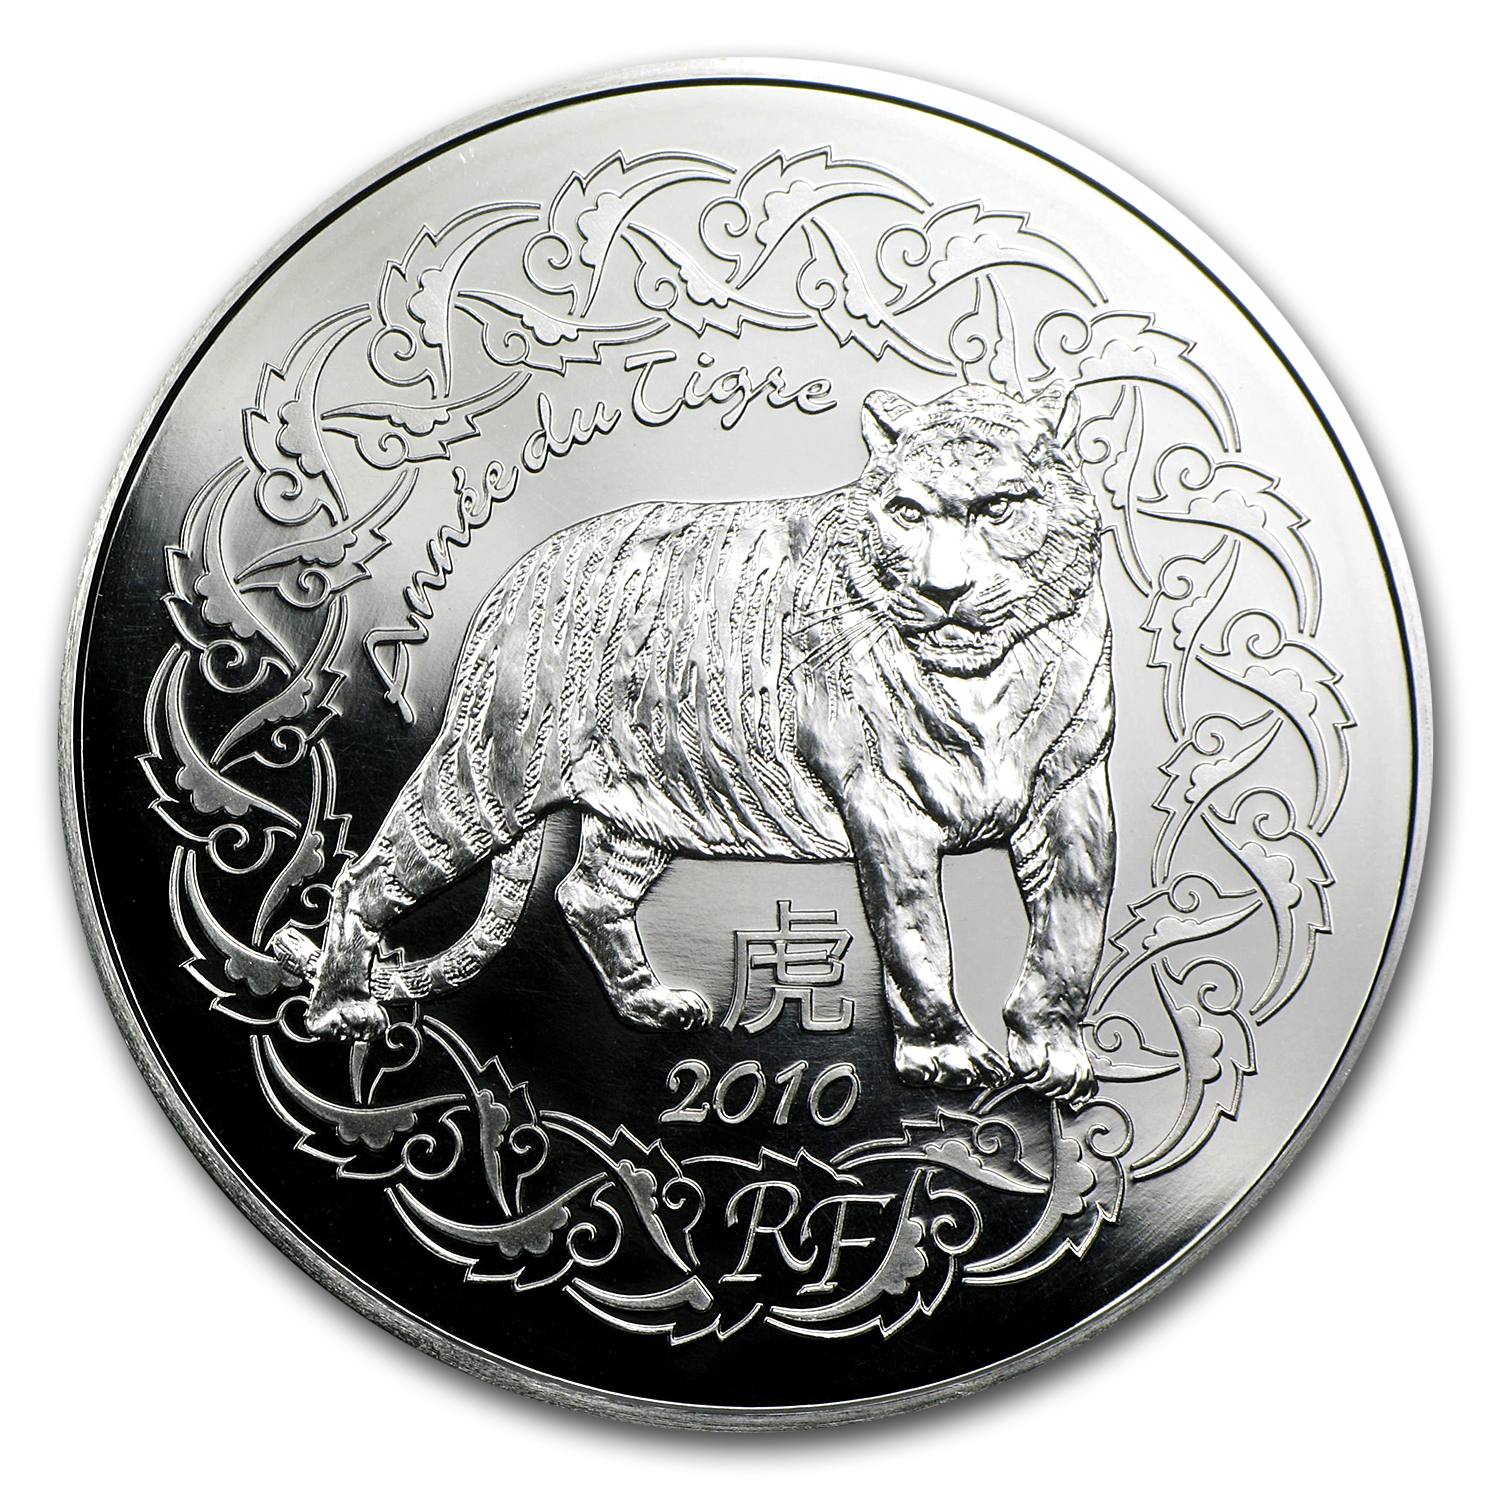 2010 France Silver €5 Year of the Tiger BU (Lunar Series)